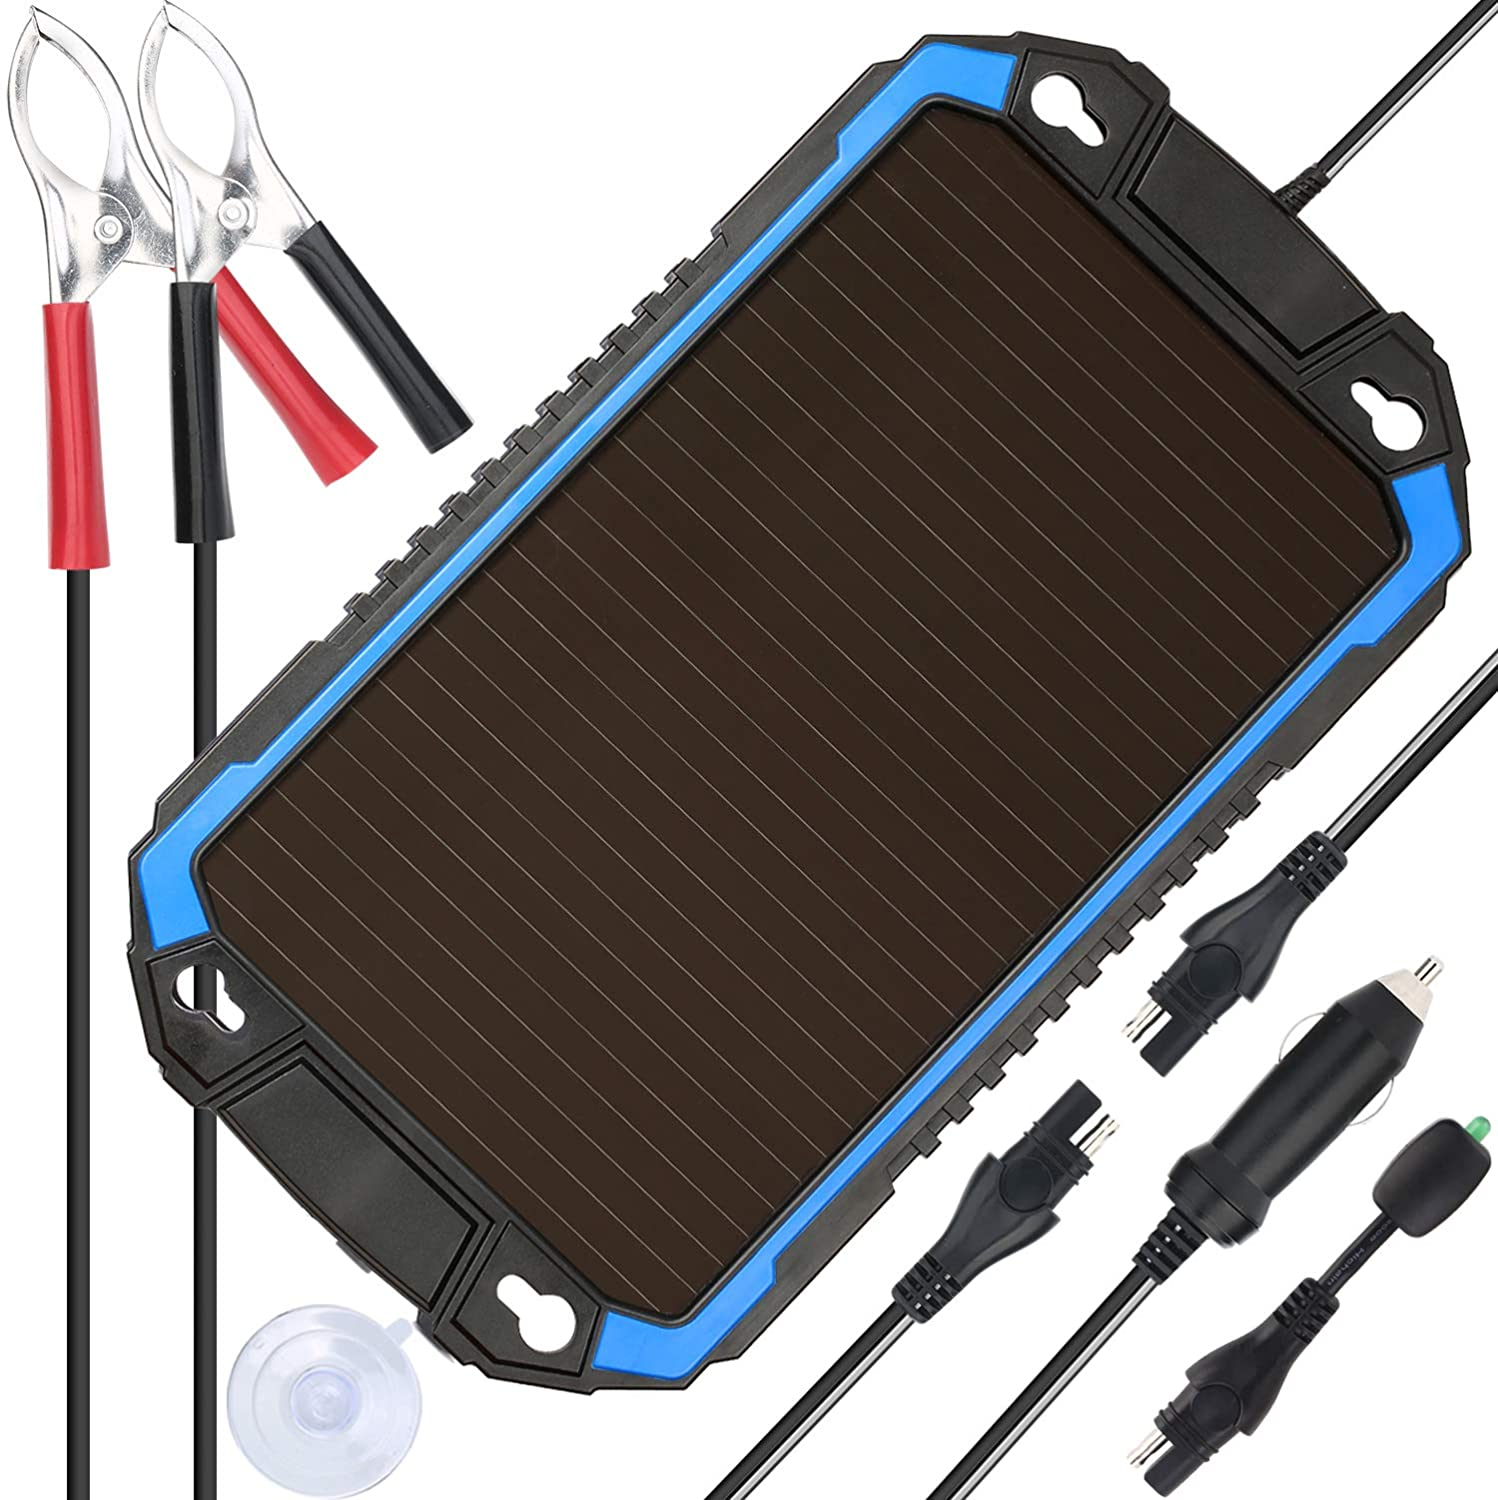 SUNER POWER 12V Solar Car Battery Charger & Maintainer - Portable 2.4W Solar Panel Trickle Charging Kit for Automotive, Motorcycle, Boat, Marine, RV, ...